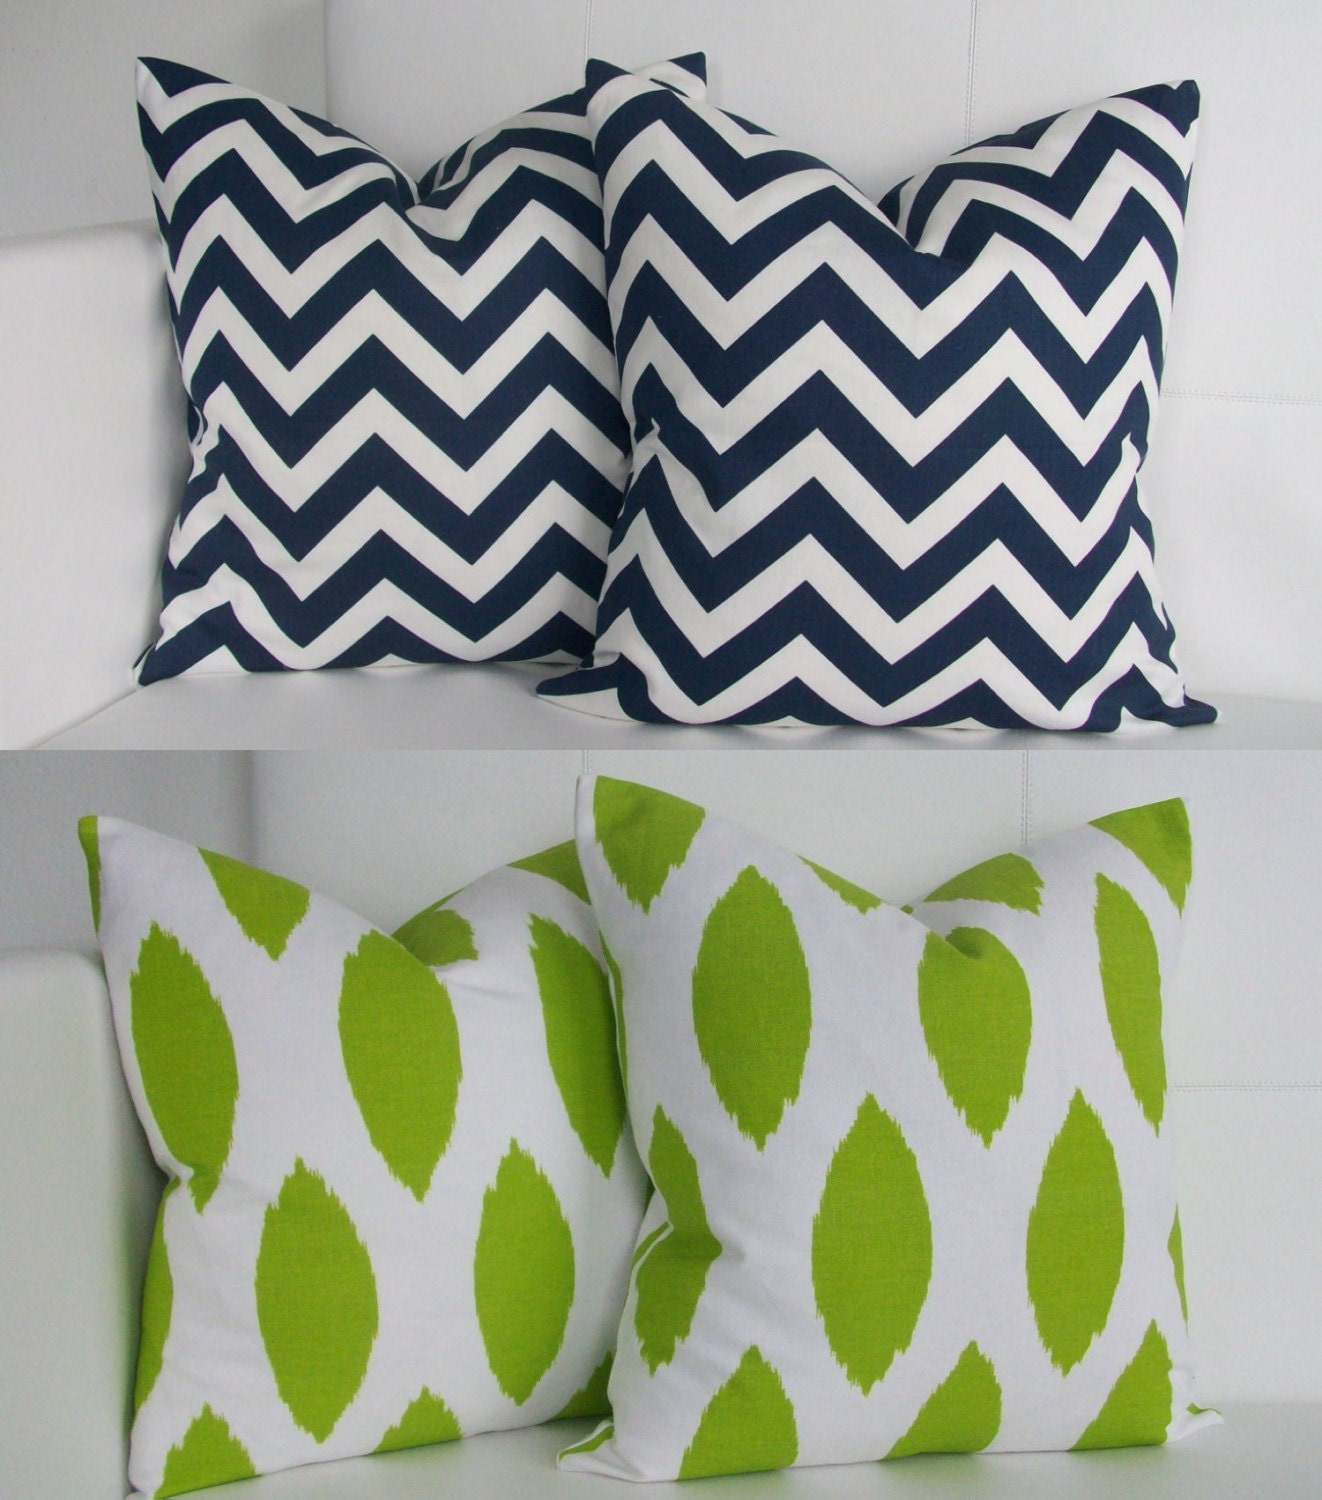 Navy Blue And Green Throw Pillows : Items similar to Navy and Green Pillow Covers - Blue and Green Throw Pillows on Etsy